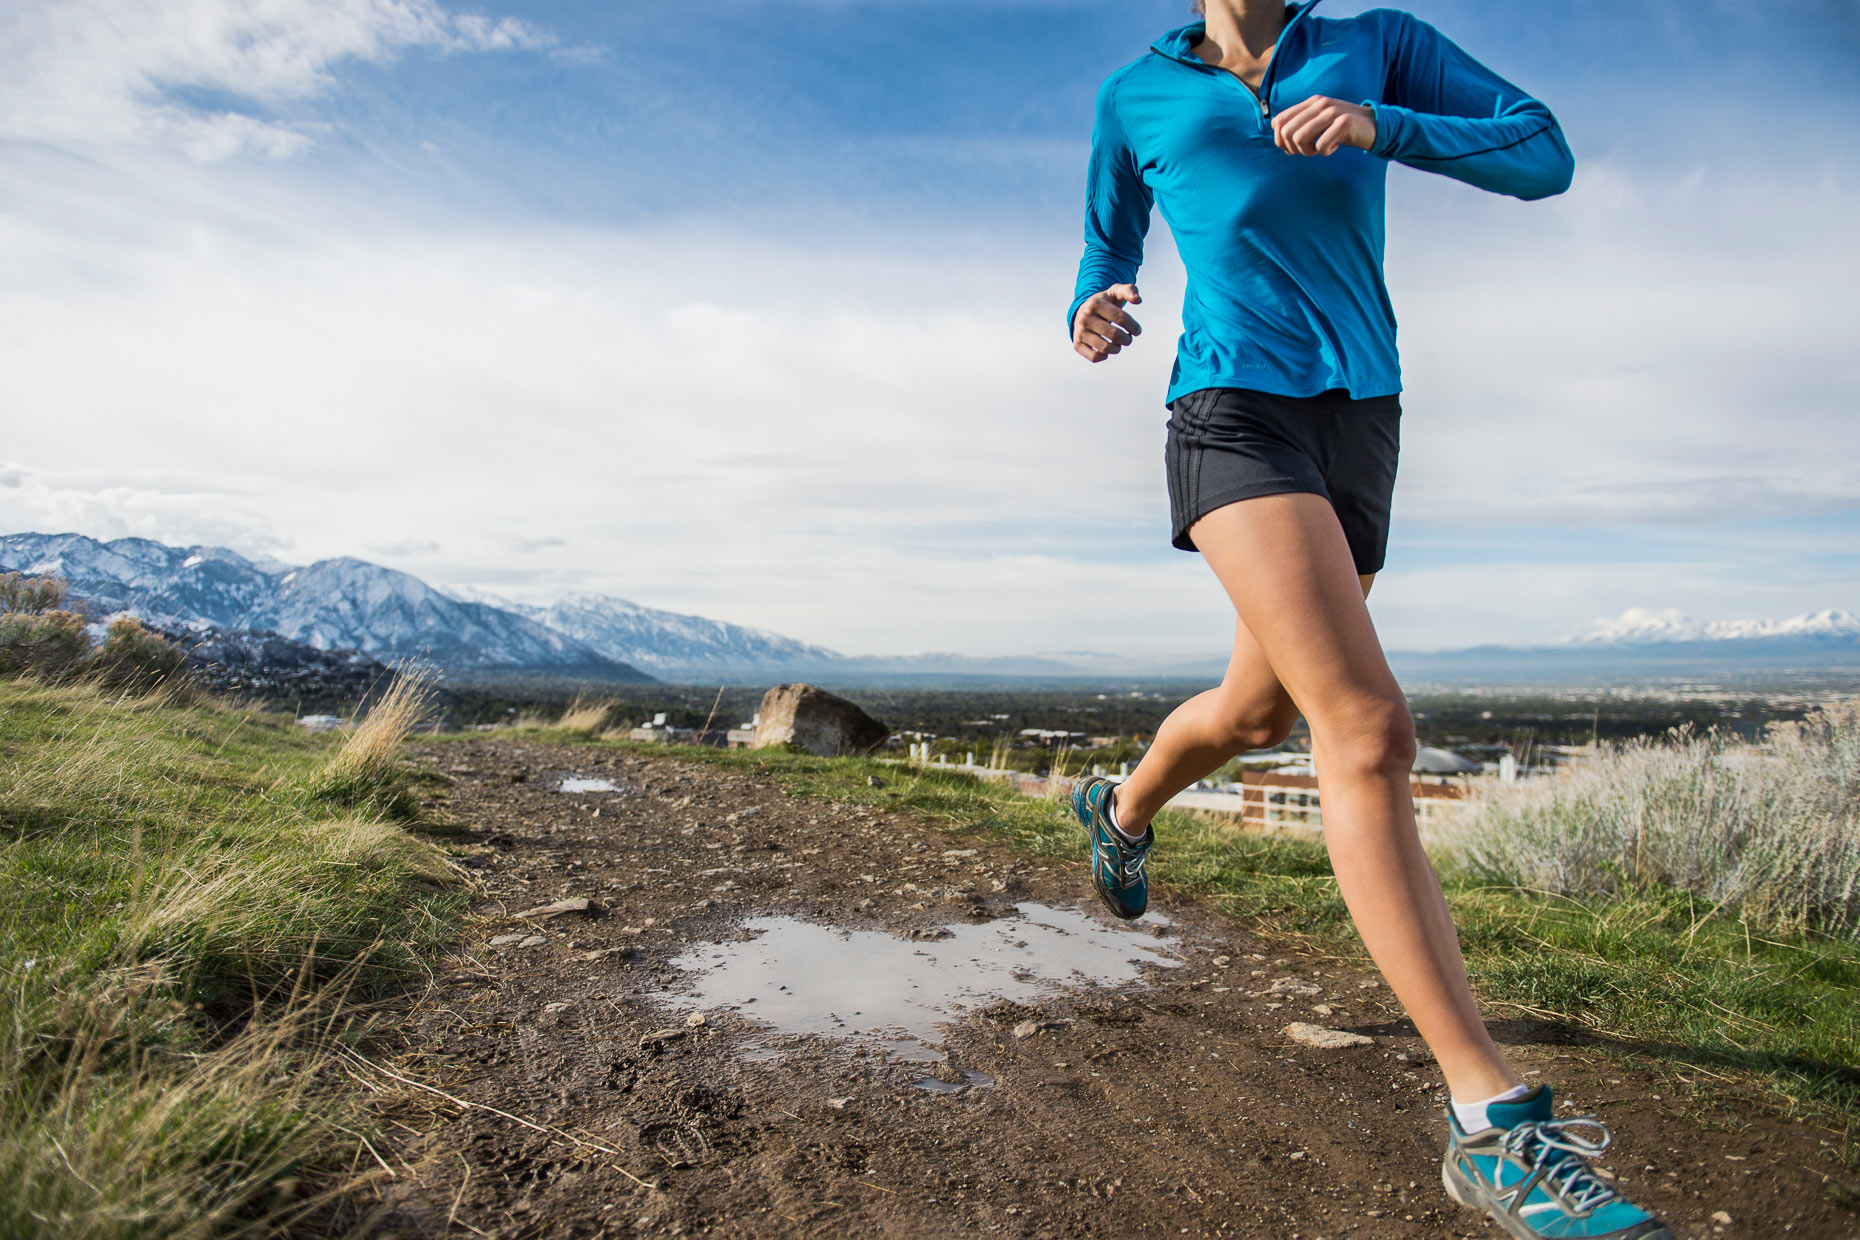 Sports Photography - Female Trail Runner Wasatch Front